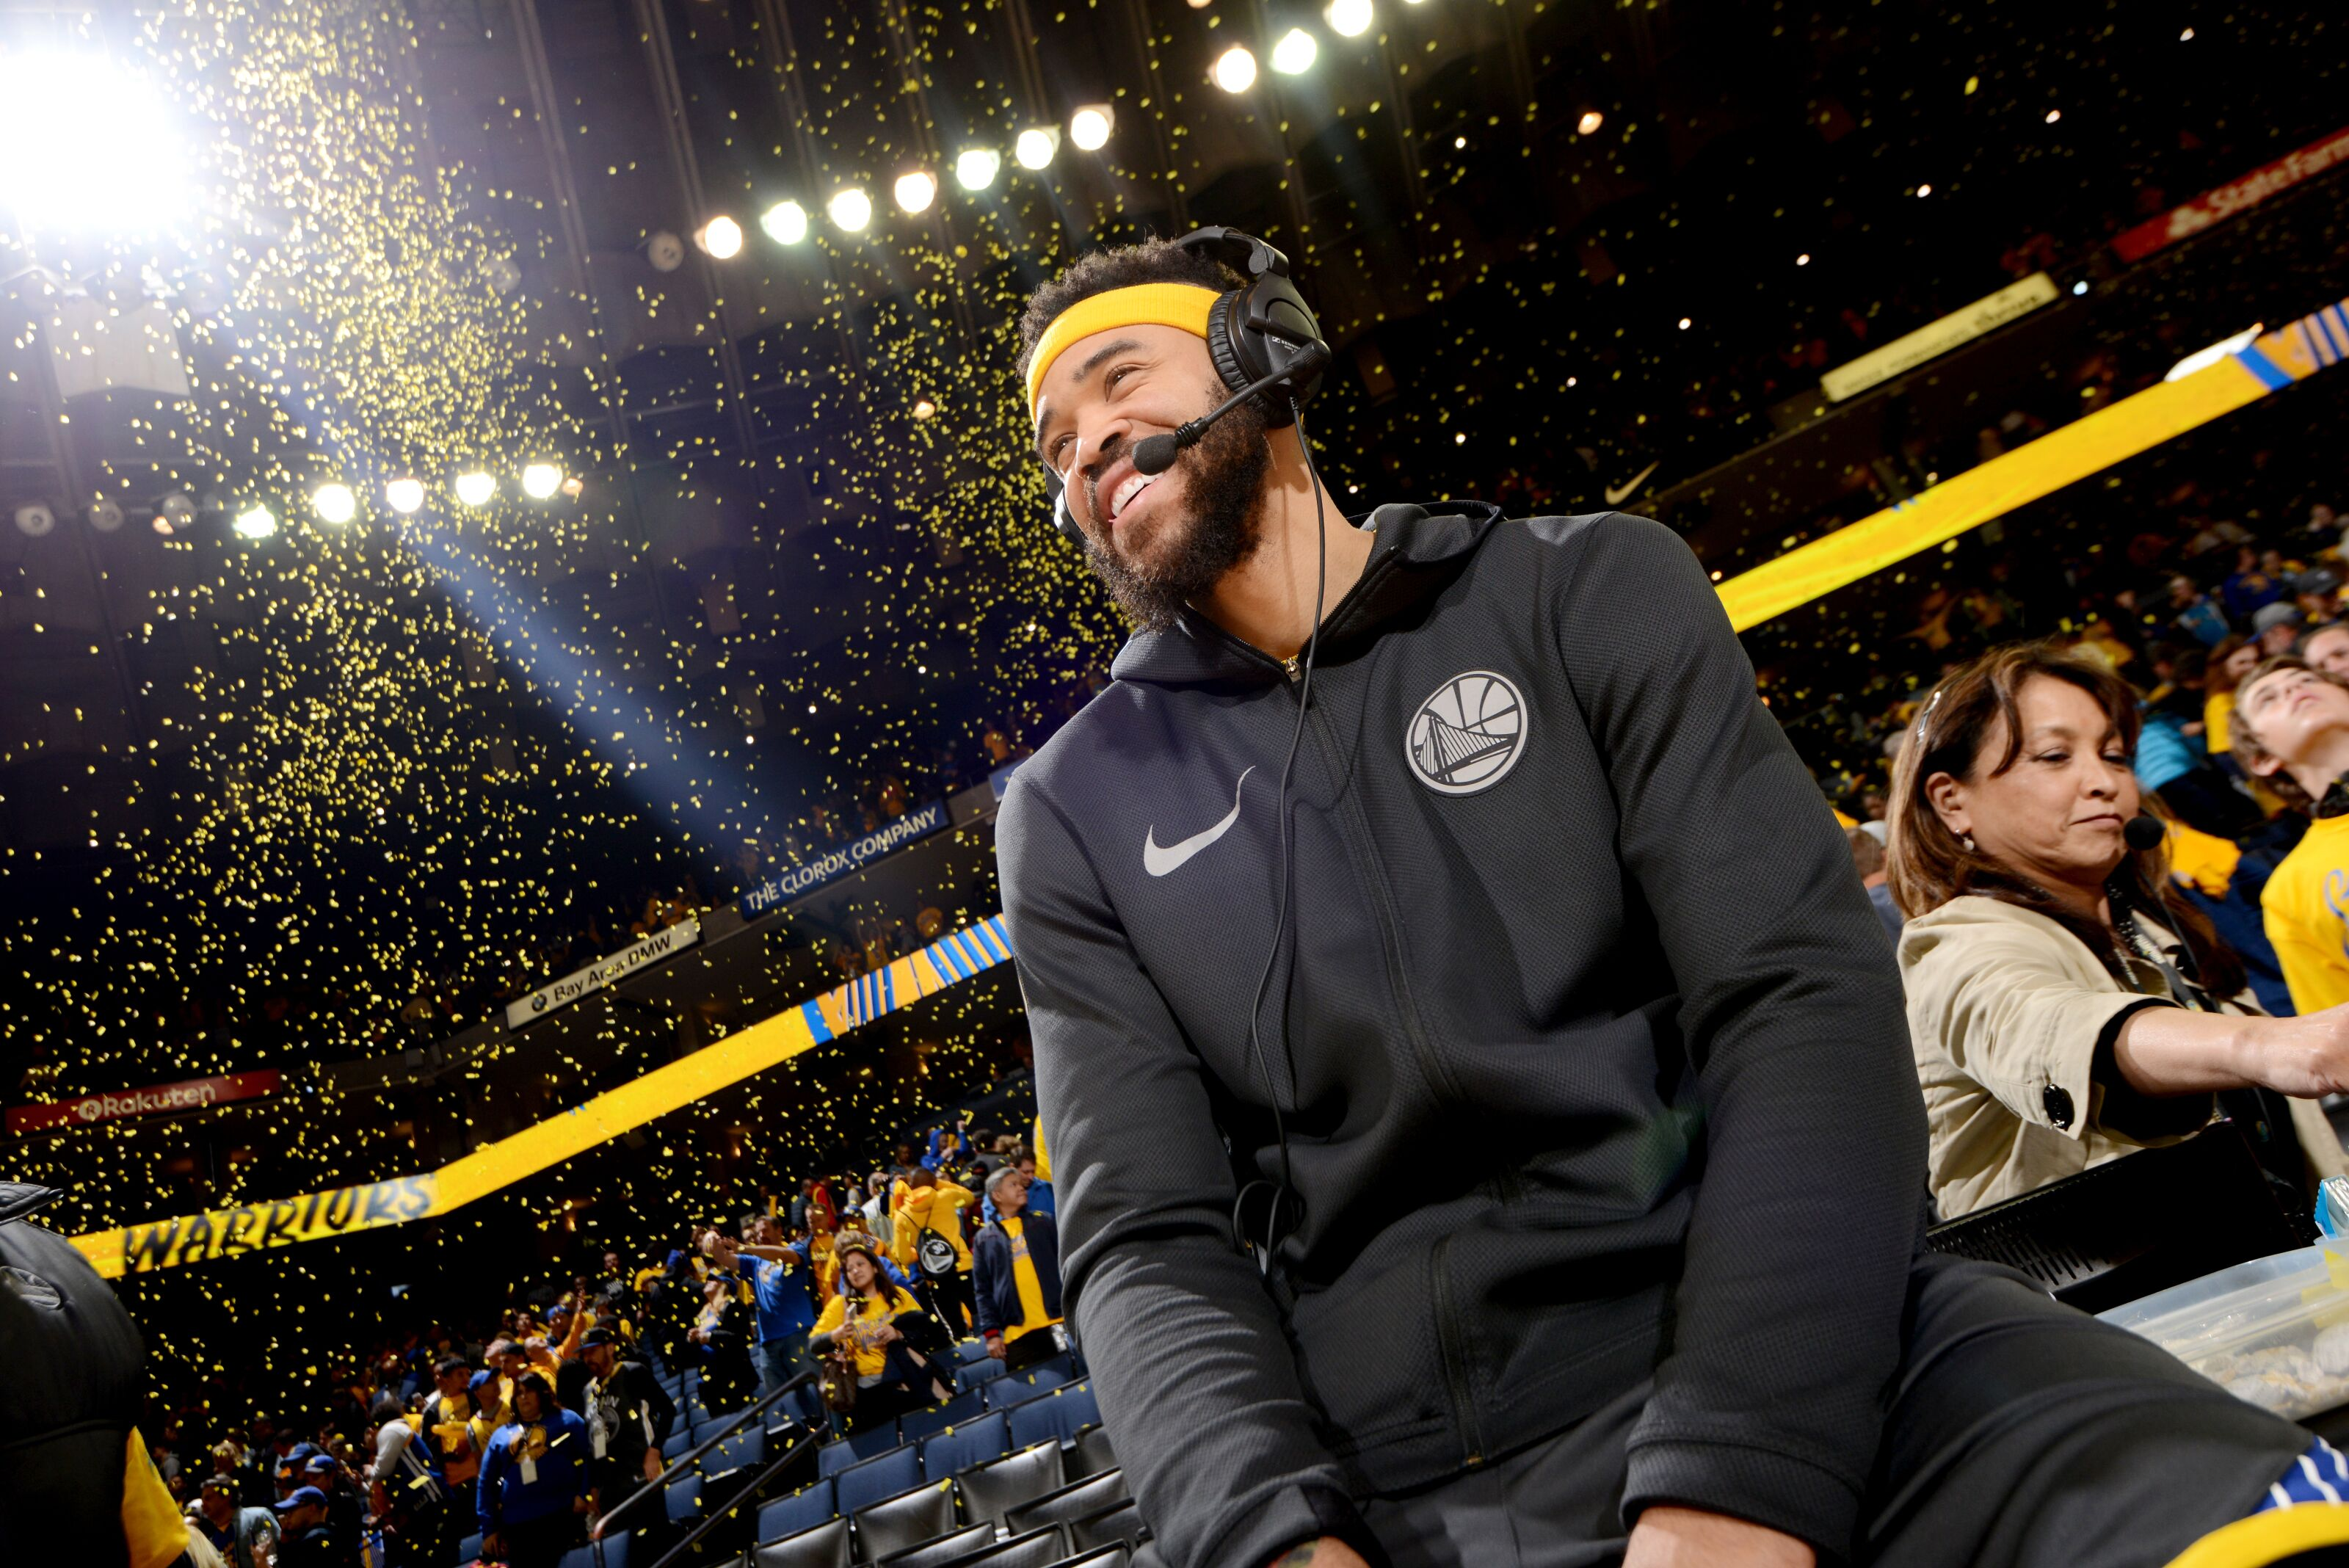 947298000-san-antonio-spurs-v-golden-state-warriors-game-two.jpg